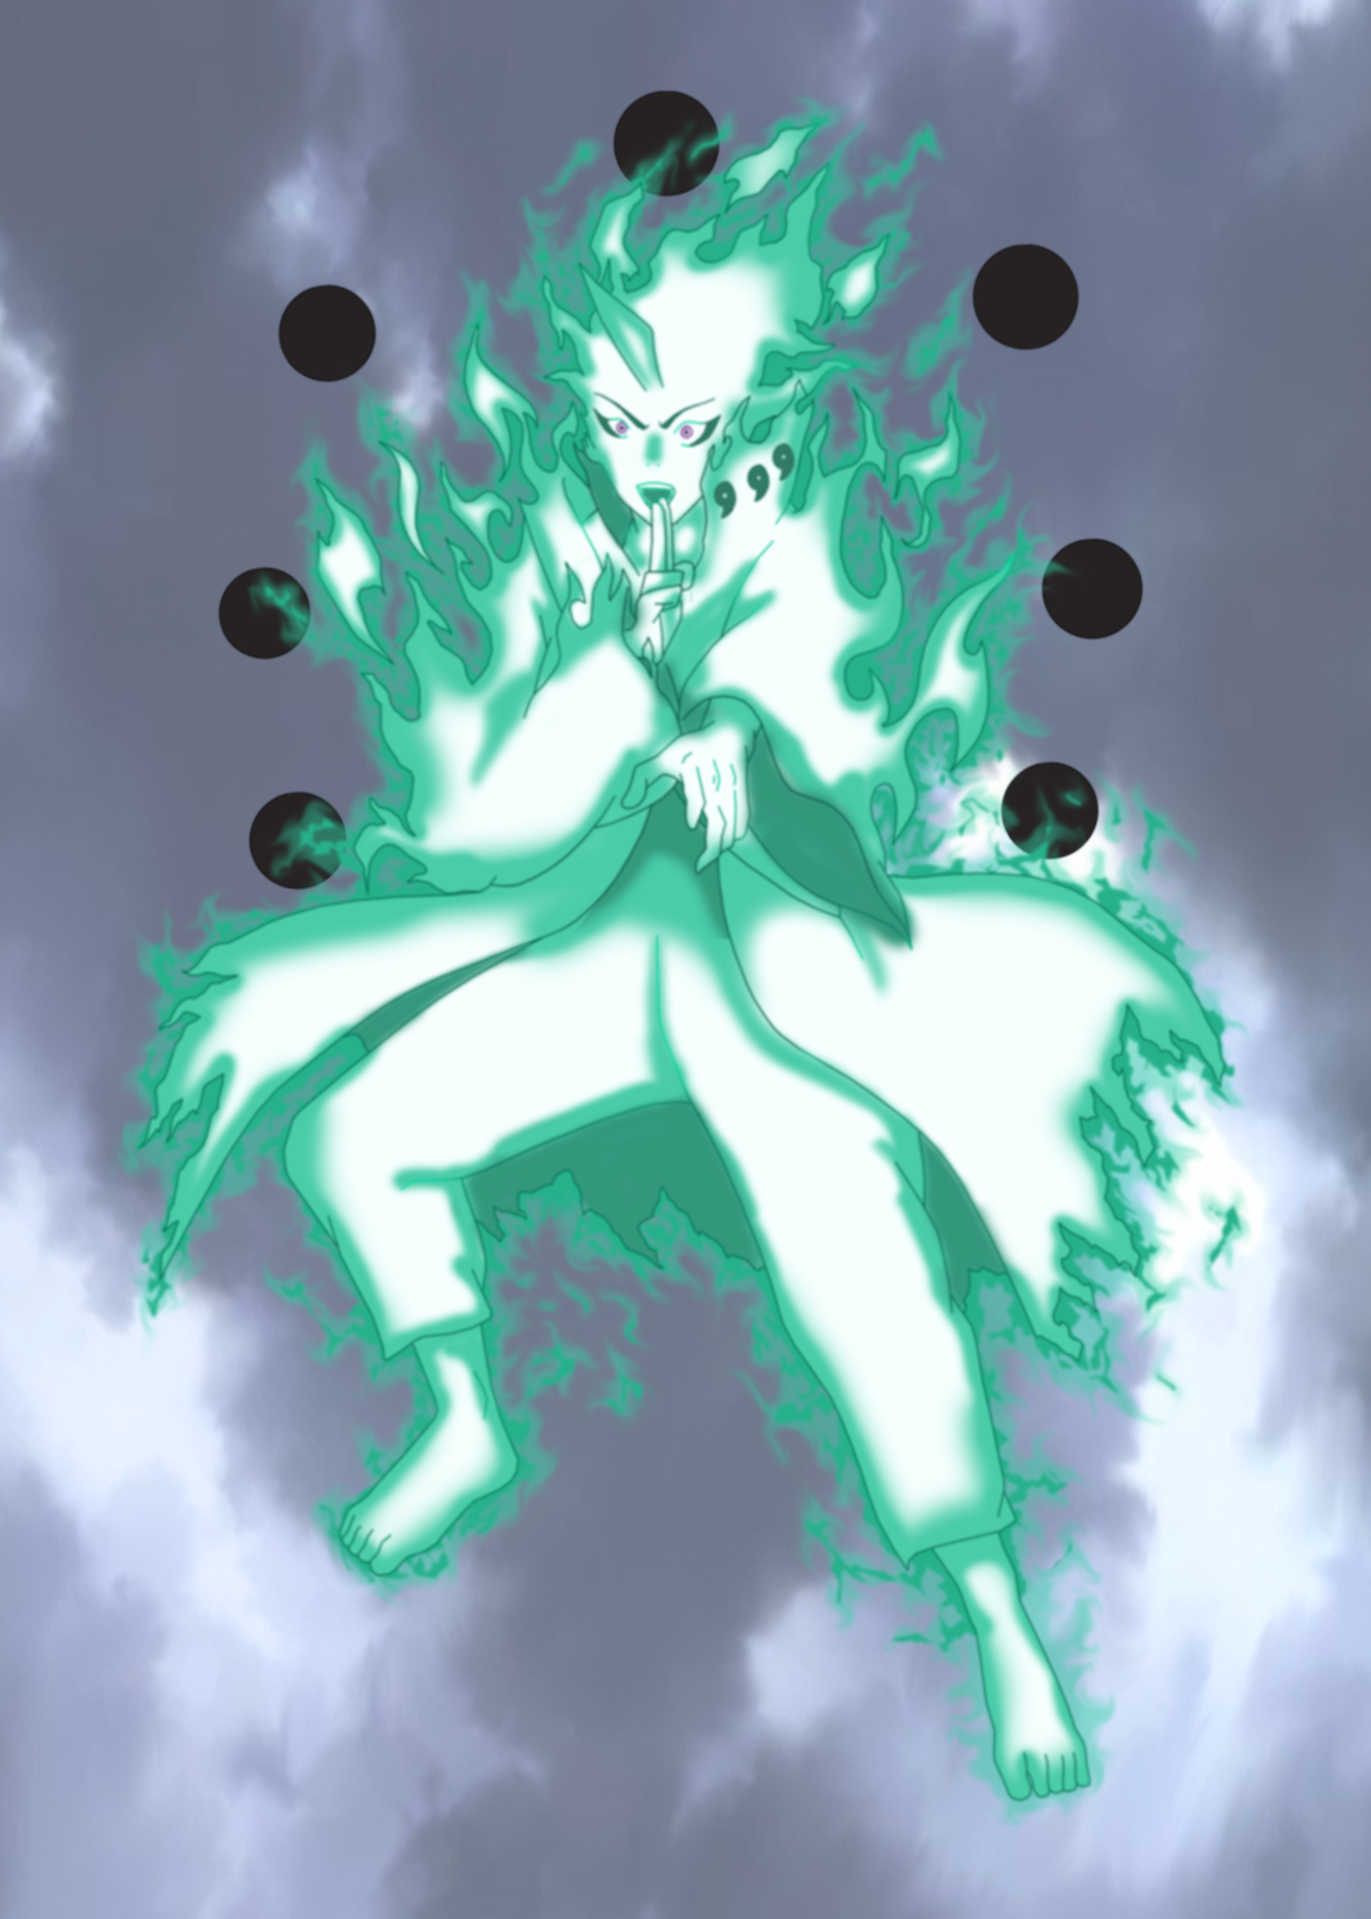 Tenseigan seems like a Six Path level boost which is massive so Hamura Probably low diffs to Mid Diffs the team